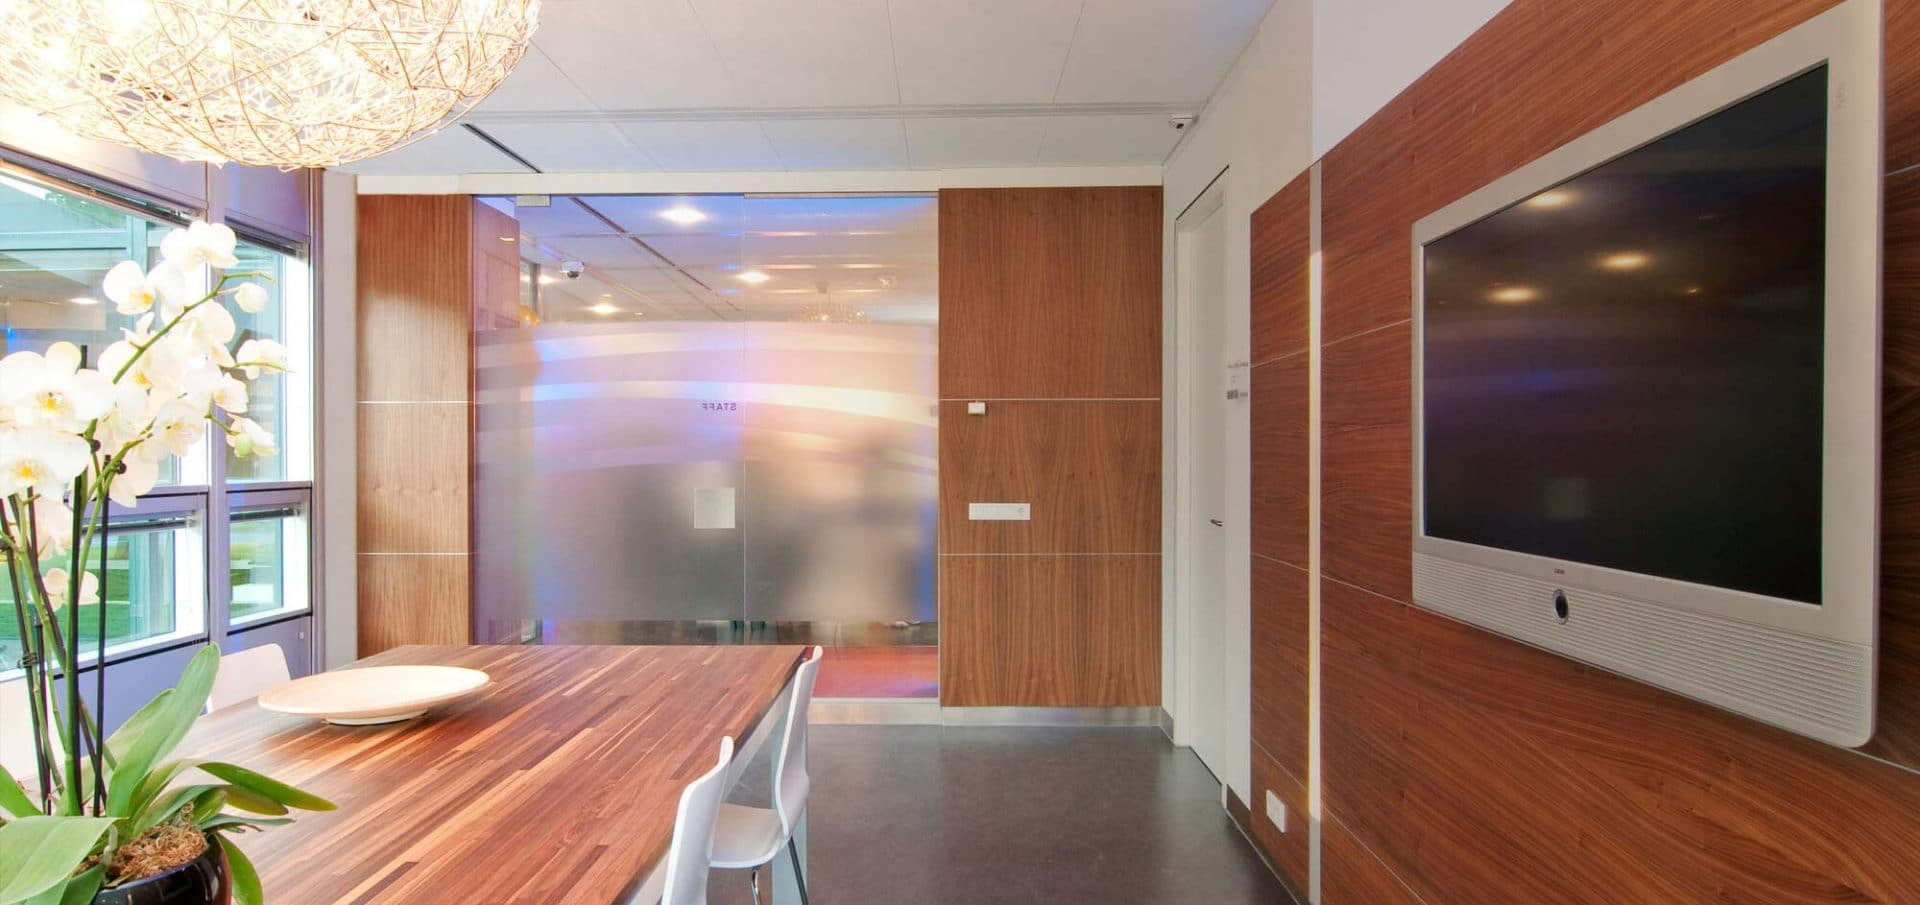 Clinic Amsterdam Meeting Room